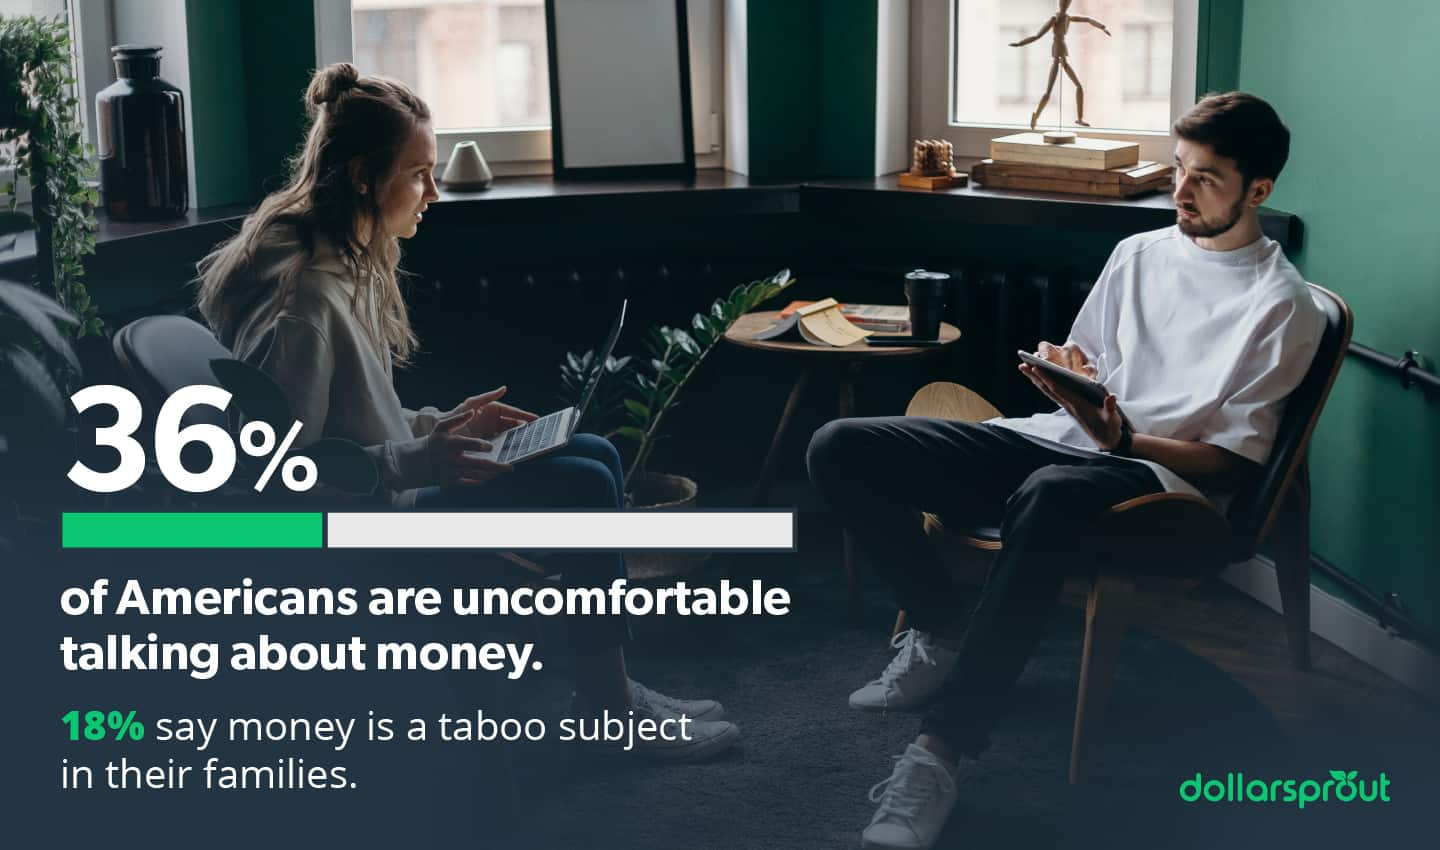 36% of Americans are uncomfortable talking about money